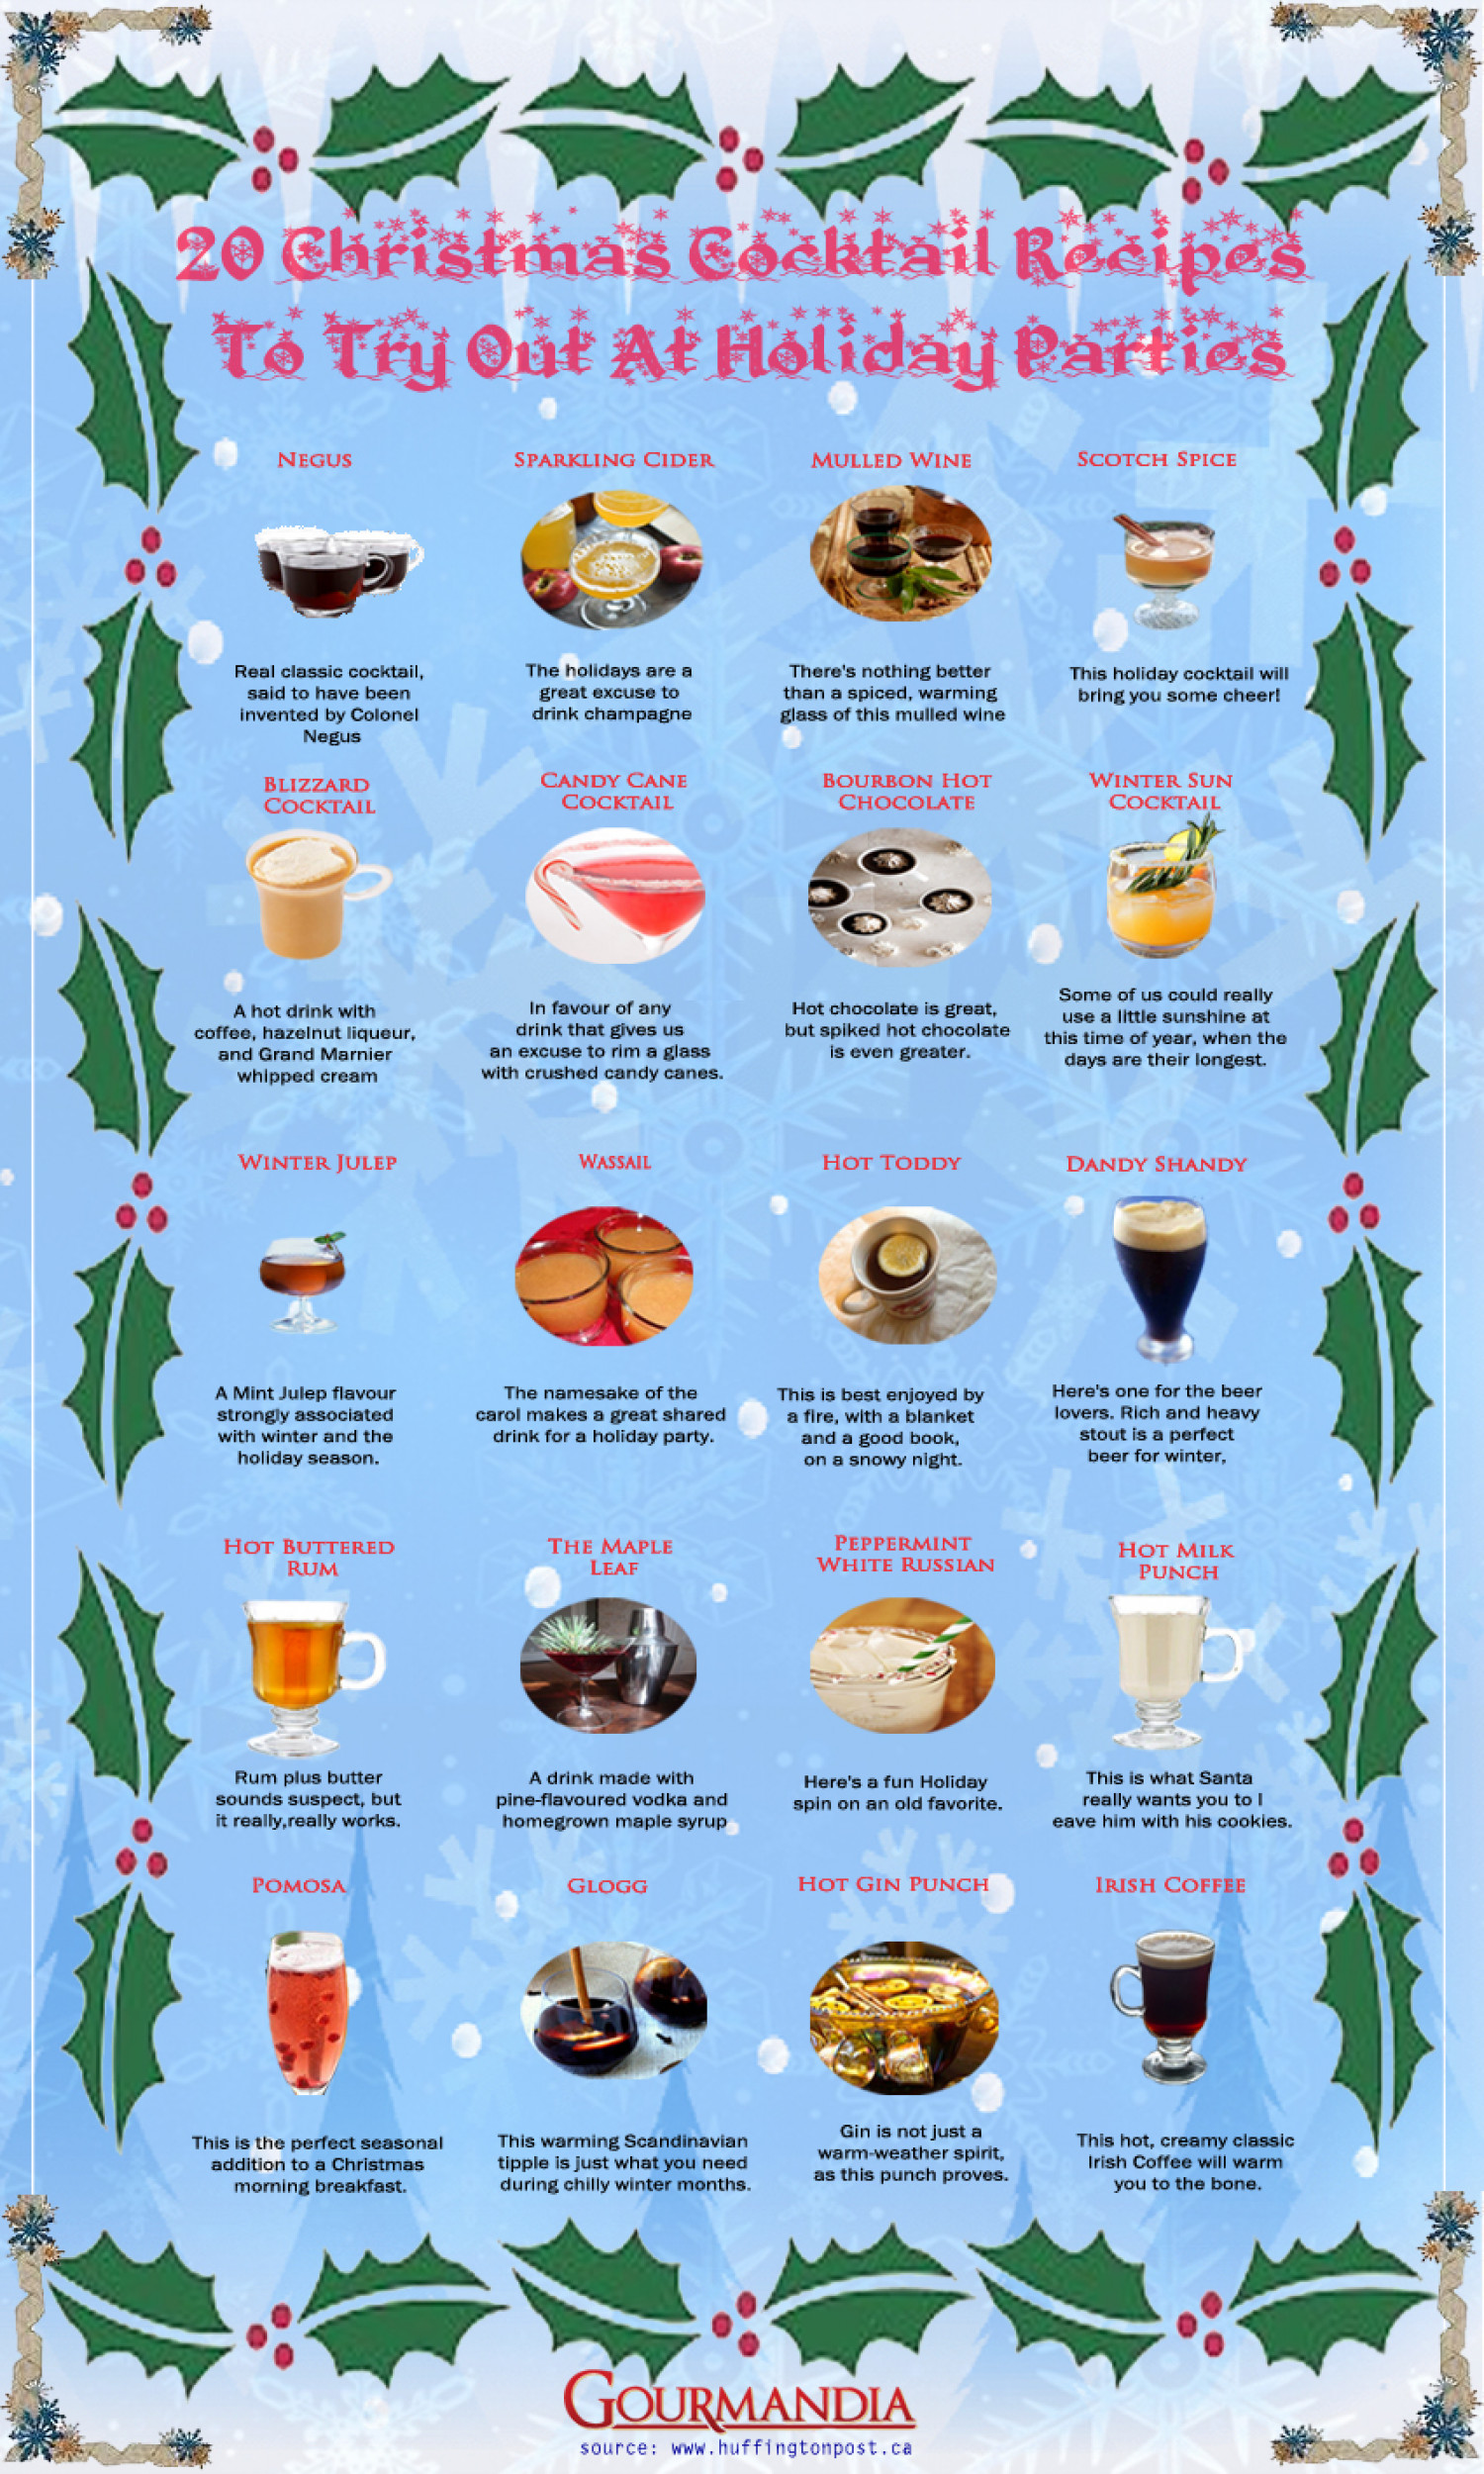 20 Christmas Cocktail Recipes to Try Out at Holiday Parties